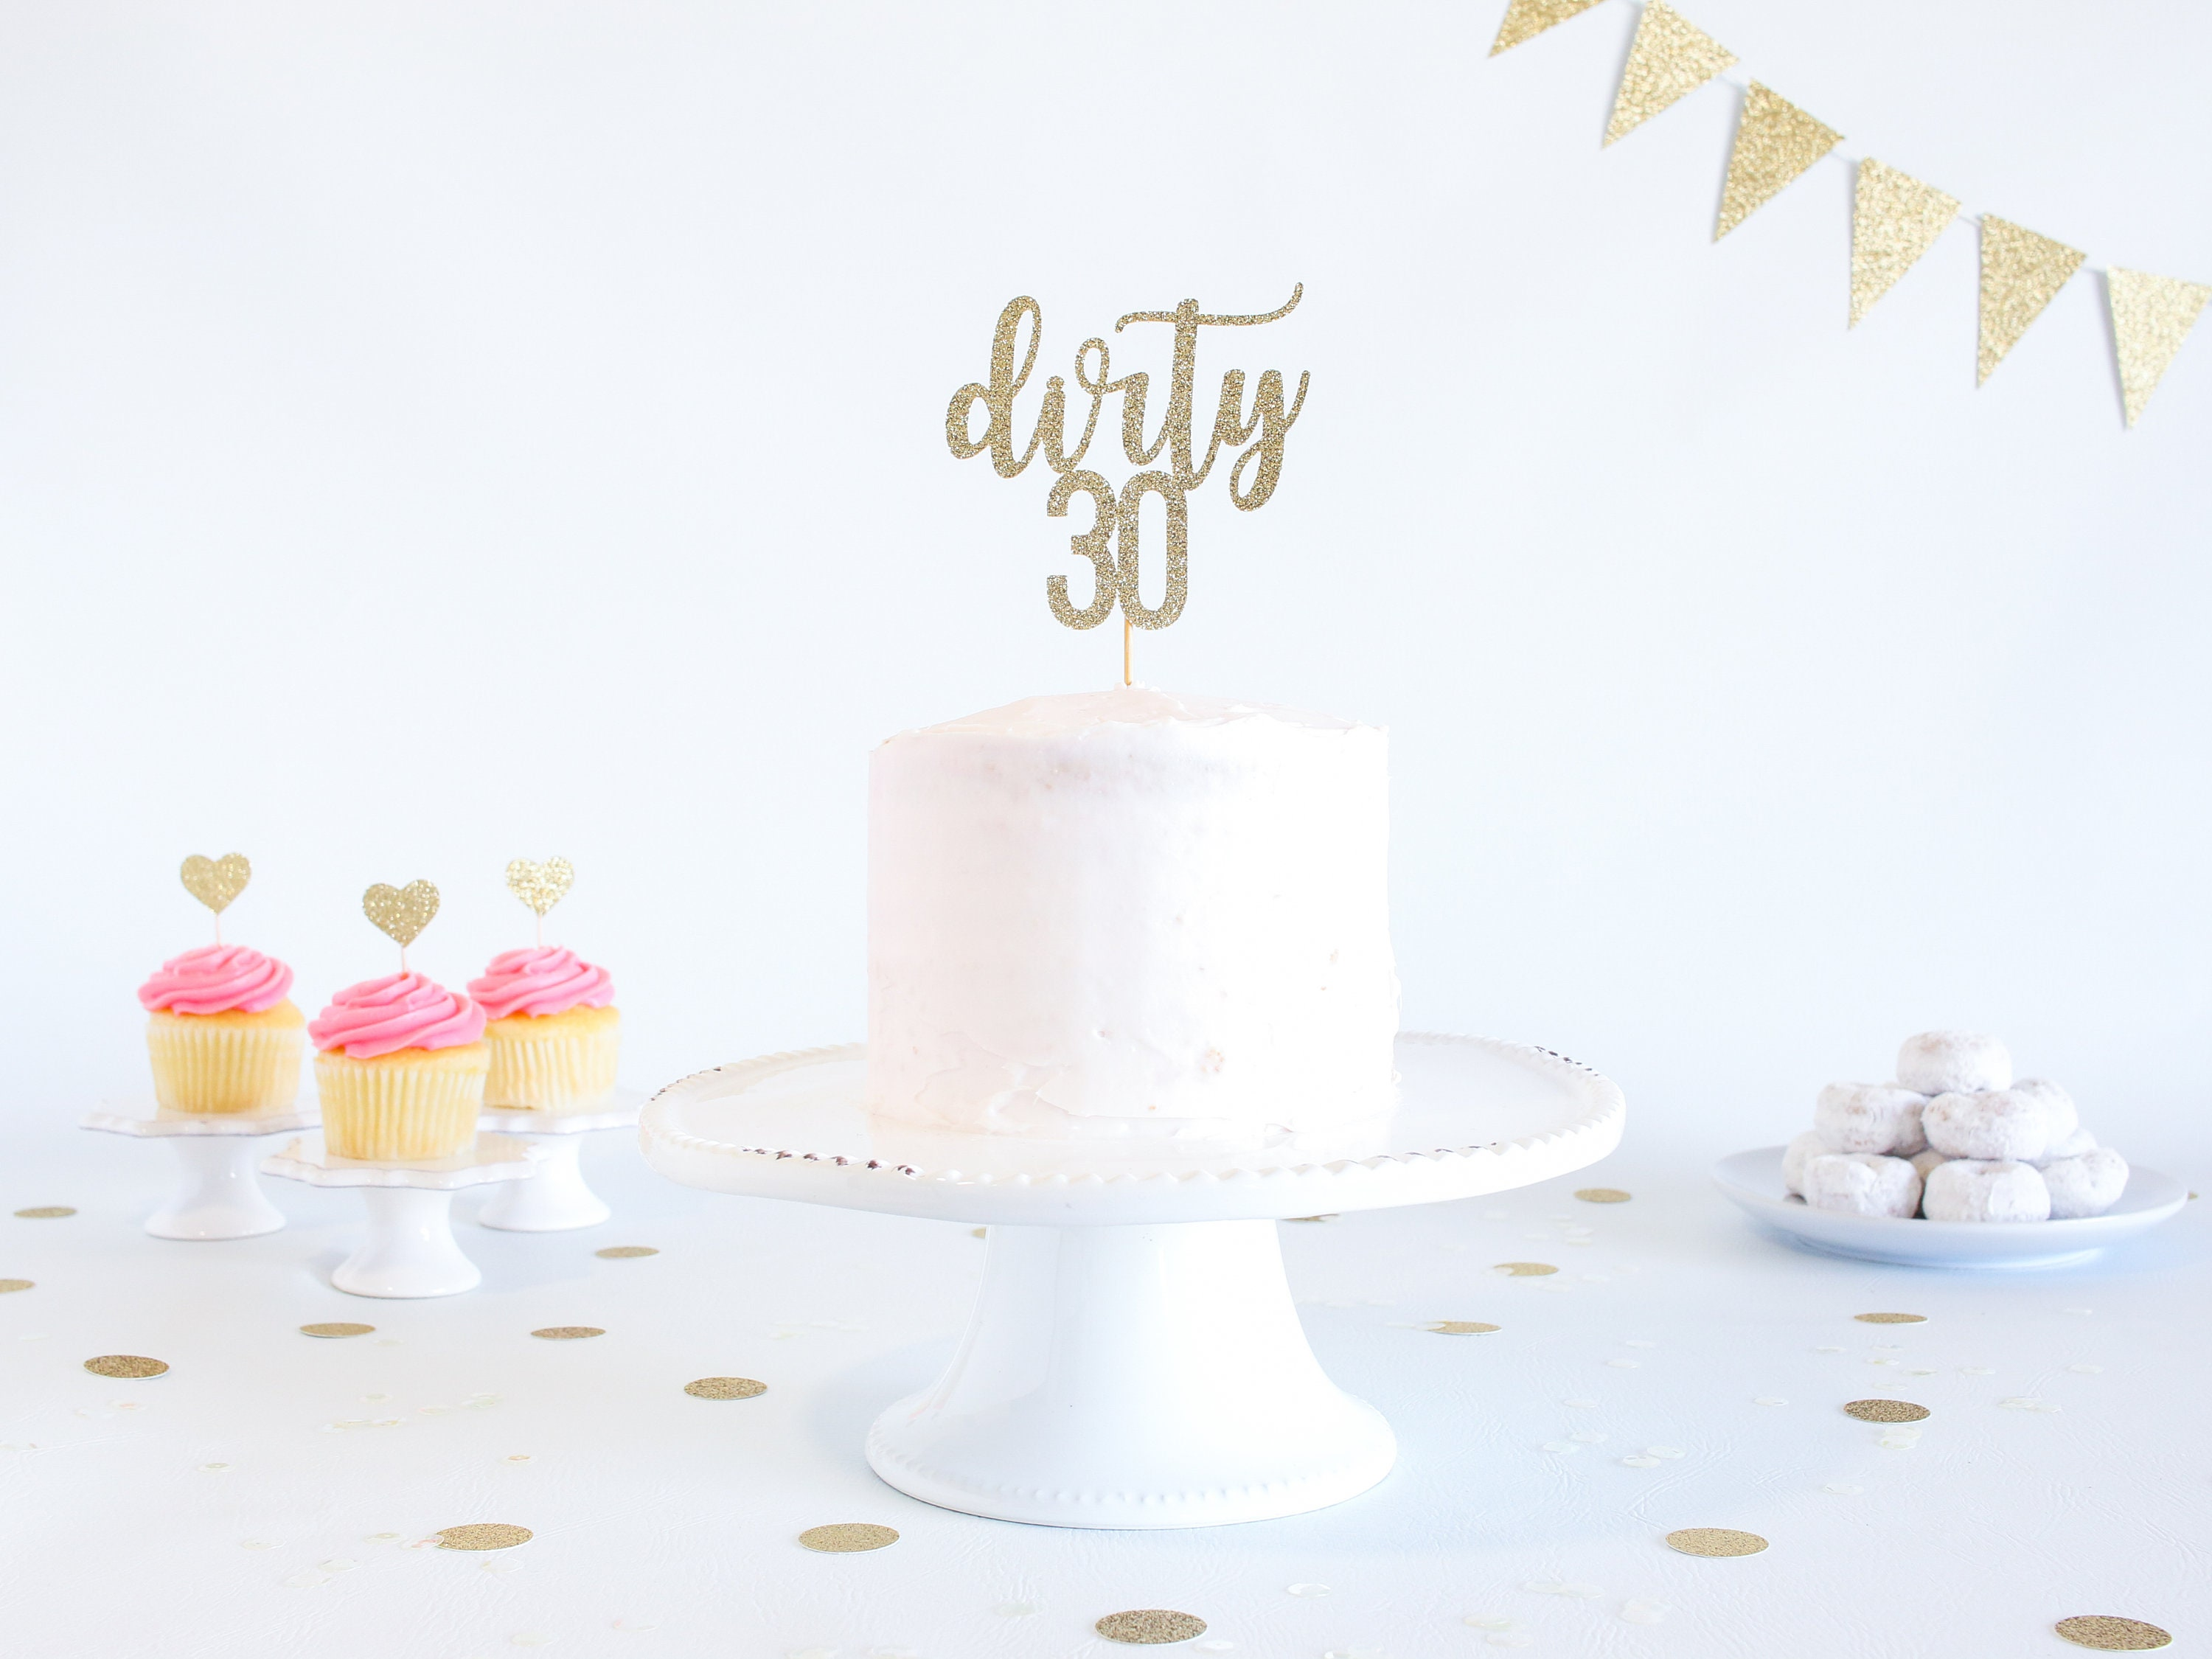 Cool Dirty 30 Cake Topper Glitter Birthday Cake Topper Funny Funny Birthday Cards Online Bapapcheapnameinfo